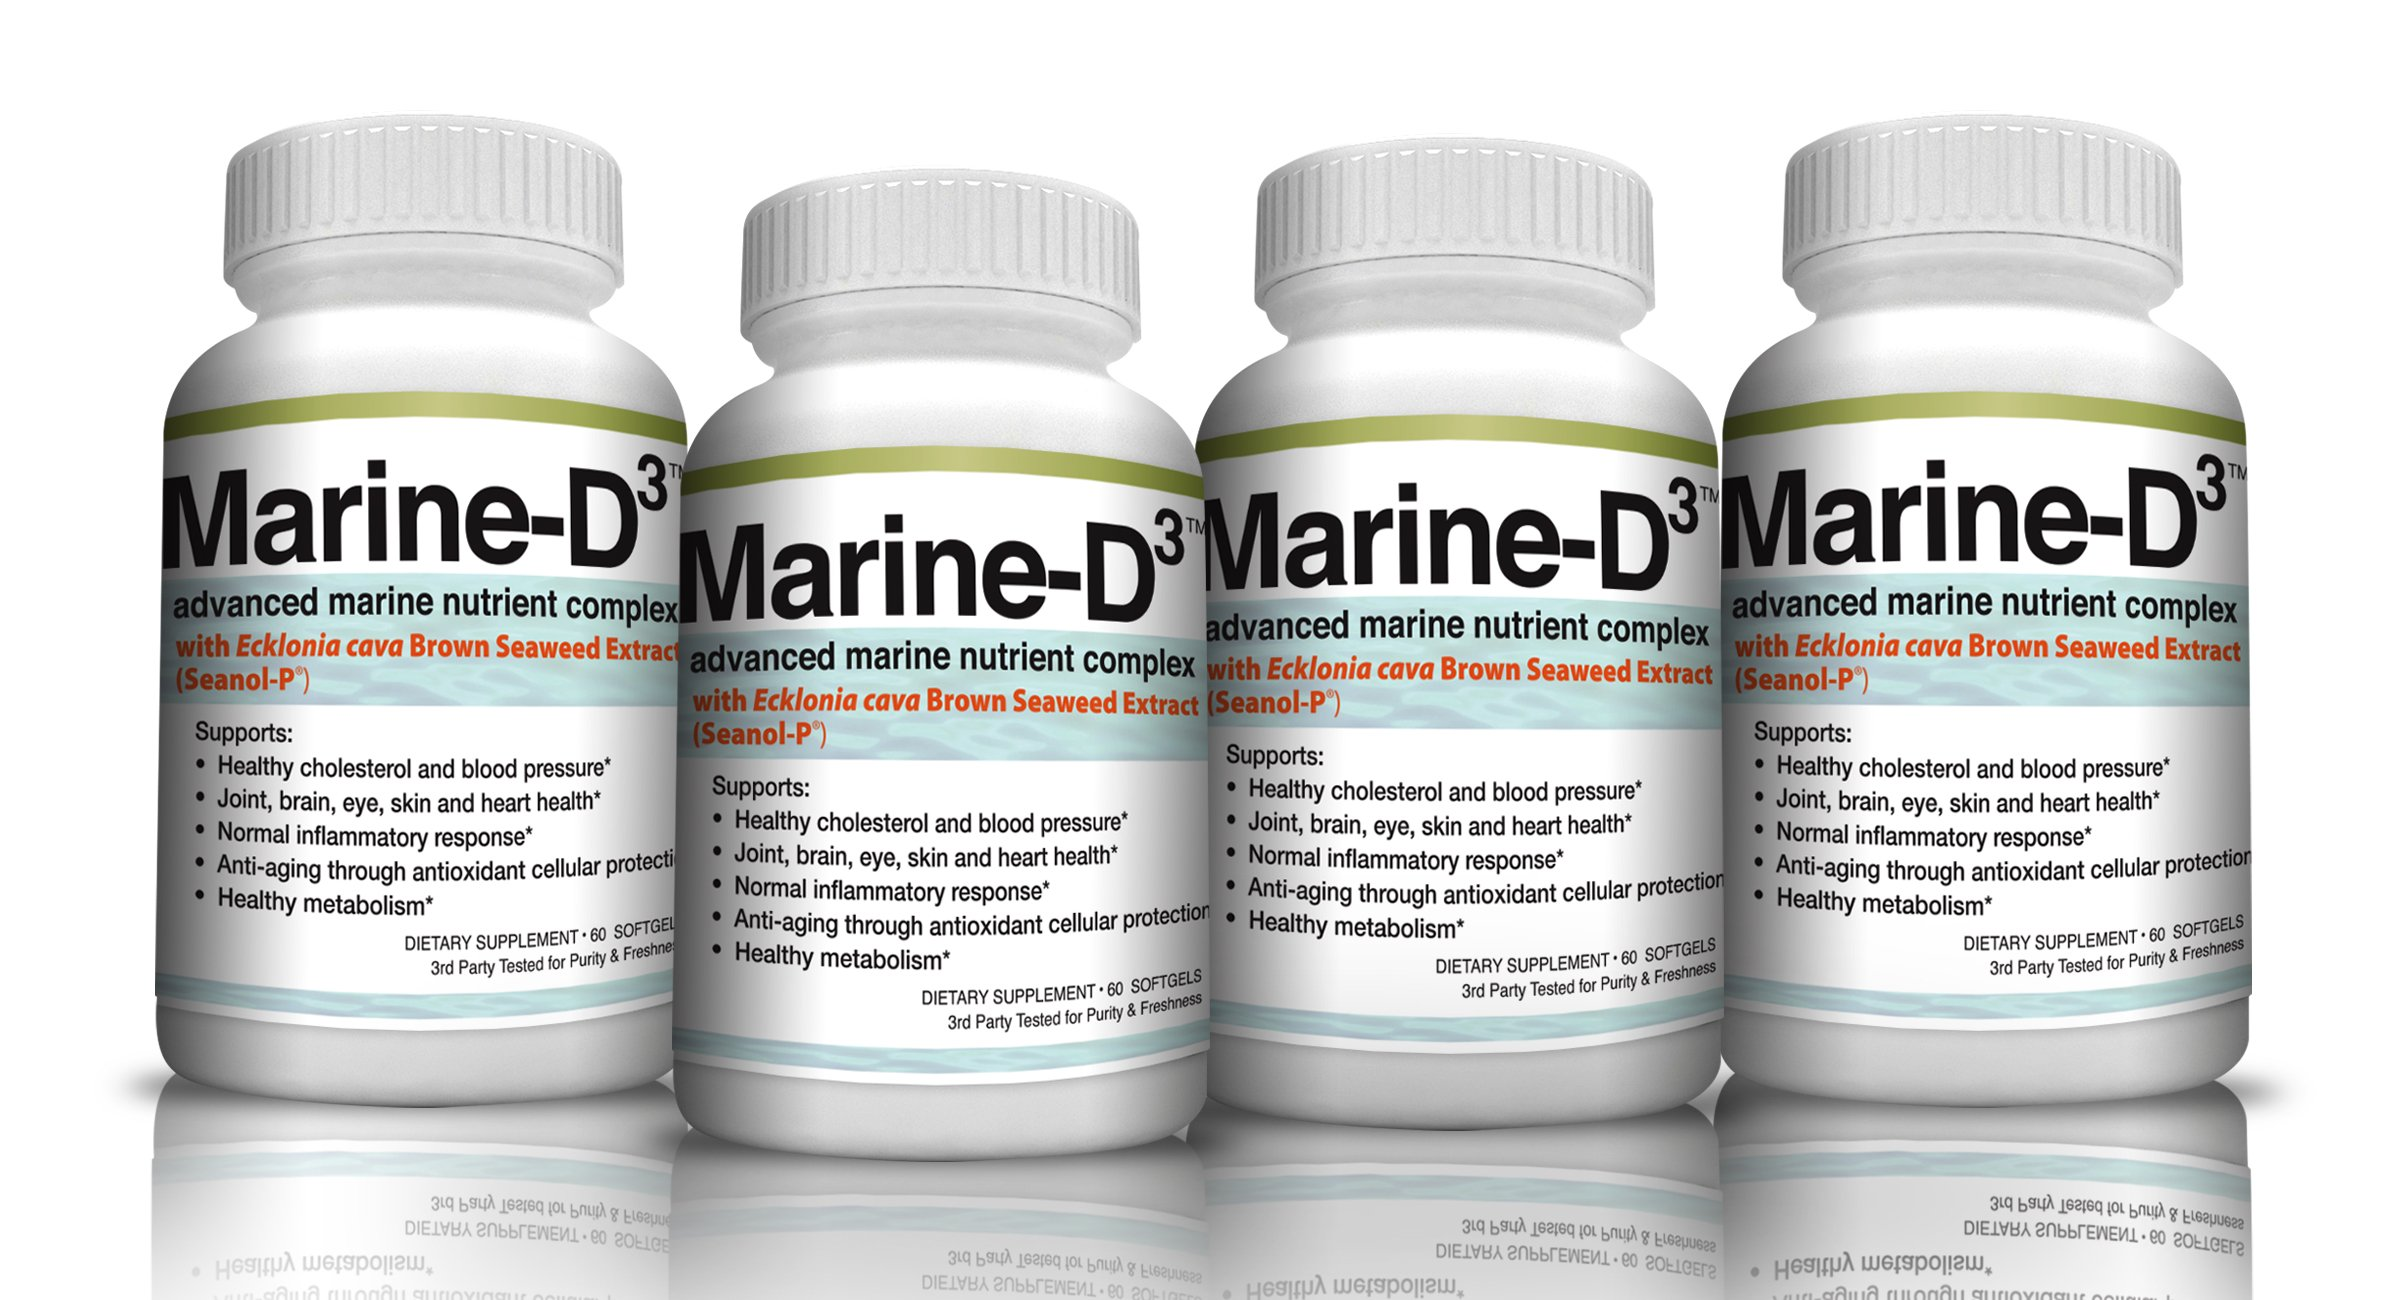 Marine-D3 340mg Anti-Aging Dietary Supplement with Vitamin D3, Omega 3 Fish Oil and DHA by Marine Essentials (240 Soft Gel Caps)